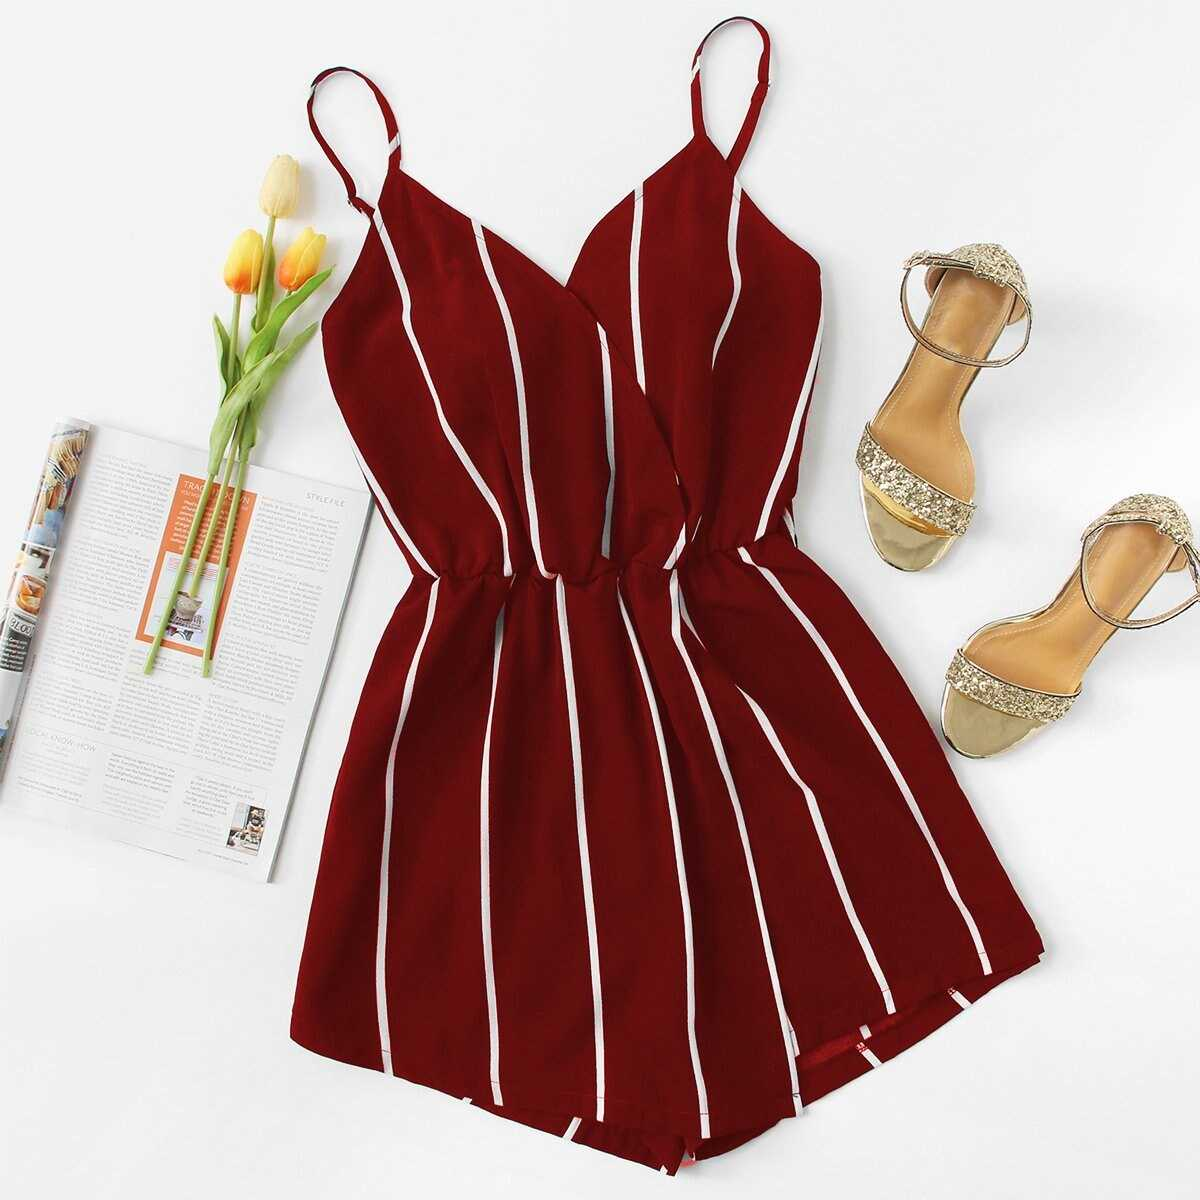 Vertical Striped Cami Romper in Burgundy by ROMWE on GOOFASH